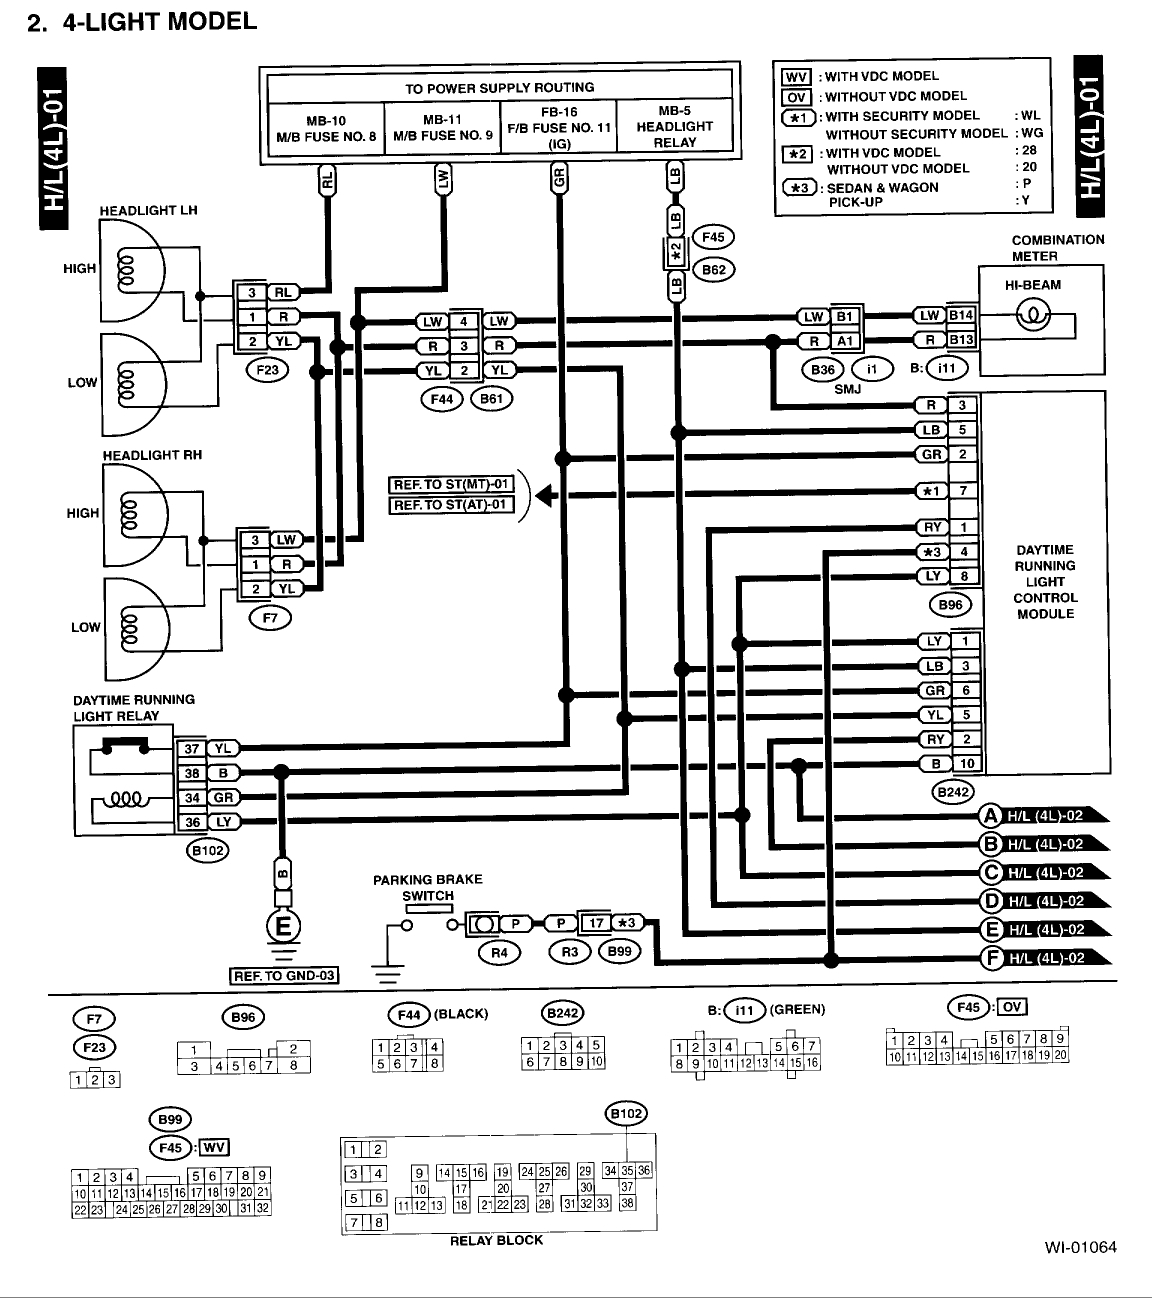 1996 subaru legacy outback wiring diagram - cool wiring diagram www -  www.profumiamore.it  profumiamore.it